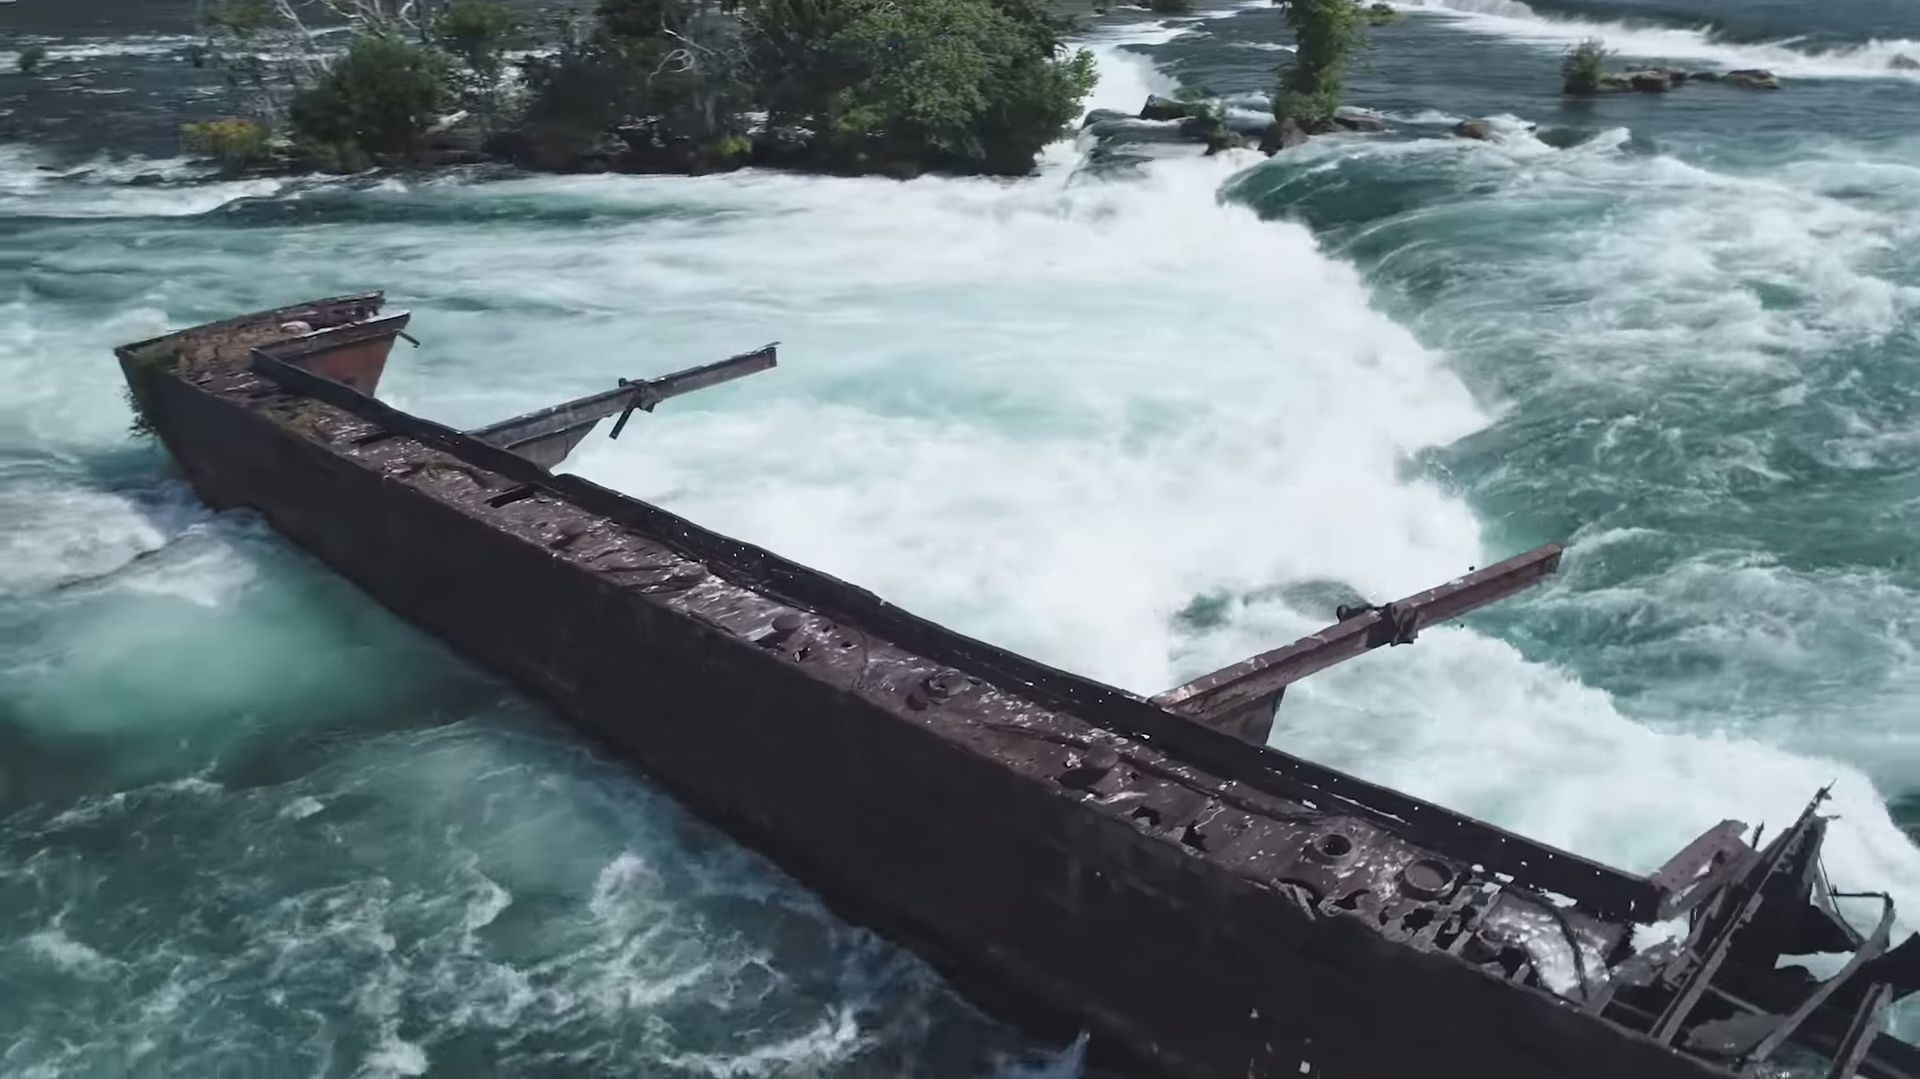 A Powerful Storm Dislodged a Cargo Ship That's Been Stuck on Niagara Falls for 101 Years